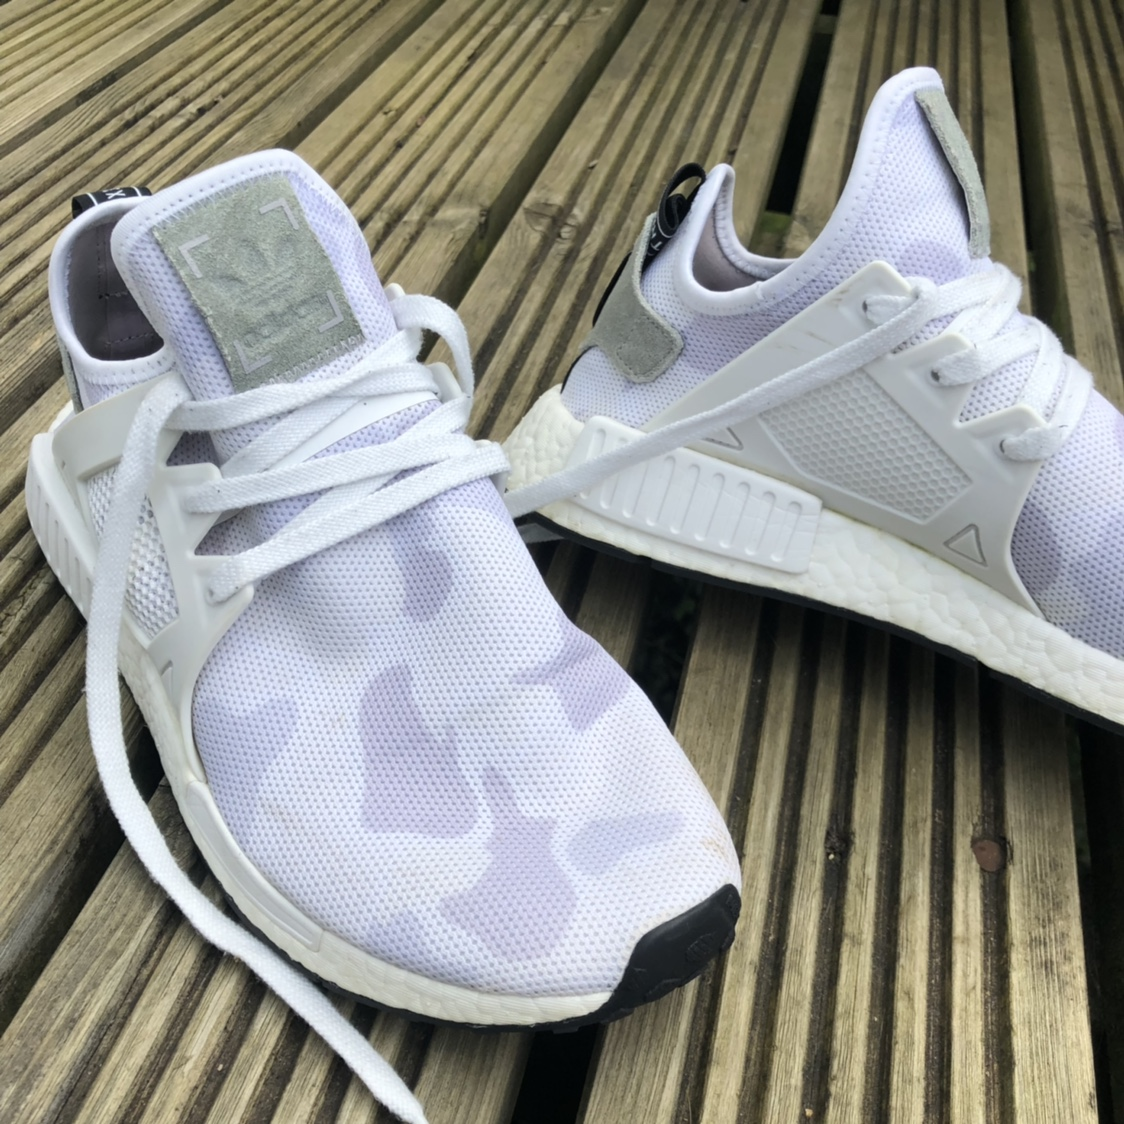 free shipping 0240a 63187 Adidas NMD XR1 white duck camo uk size 9.5, barely... - Depop